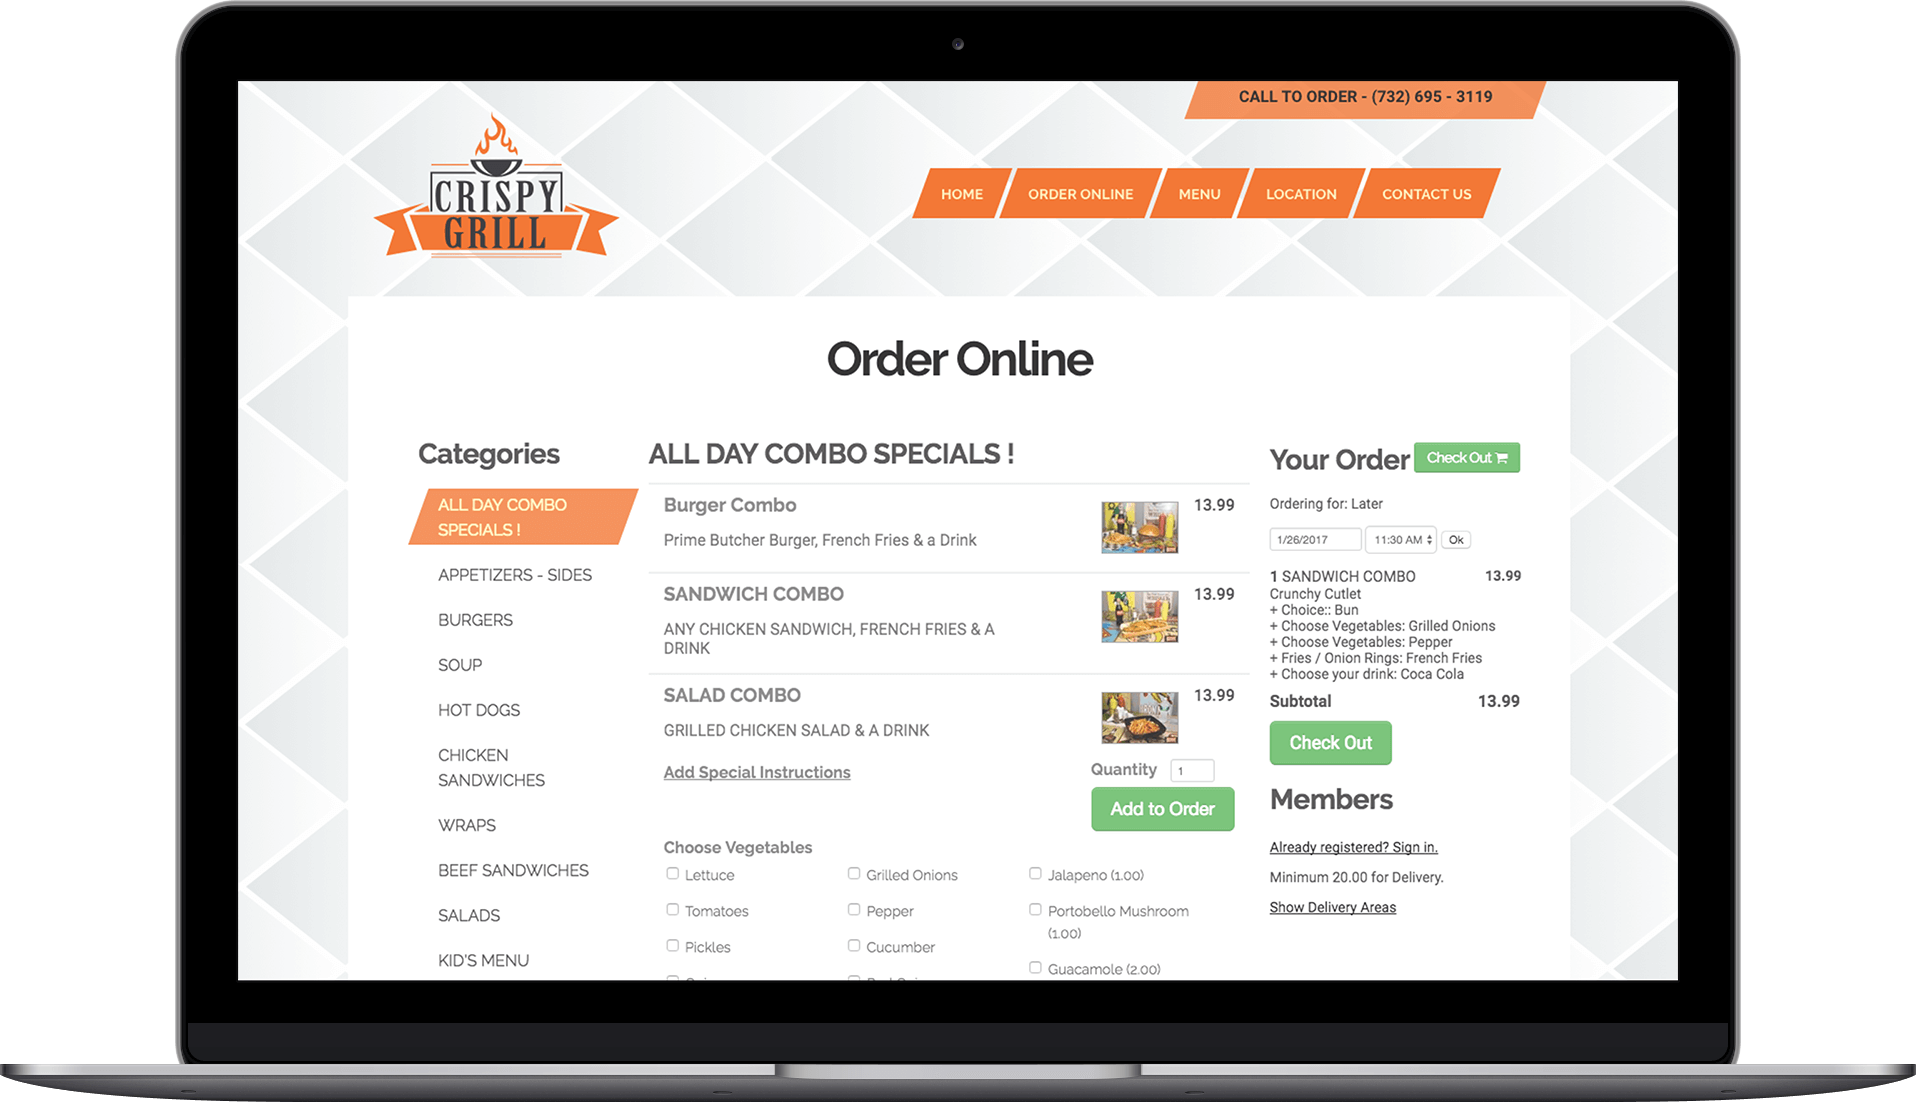 Online ordering system and website design for restaurants | Orders2me